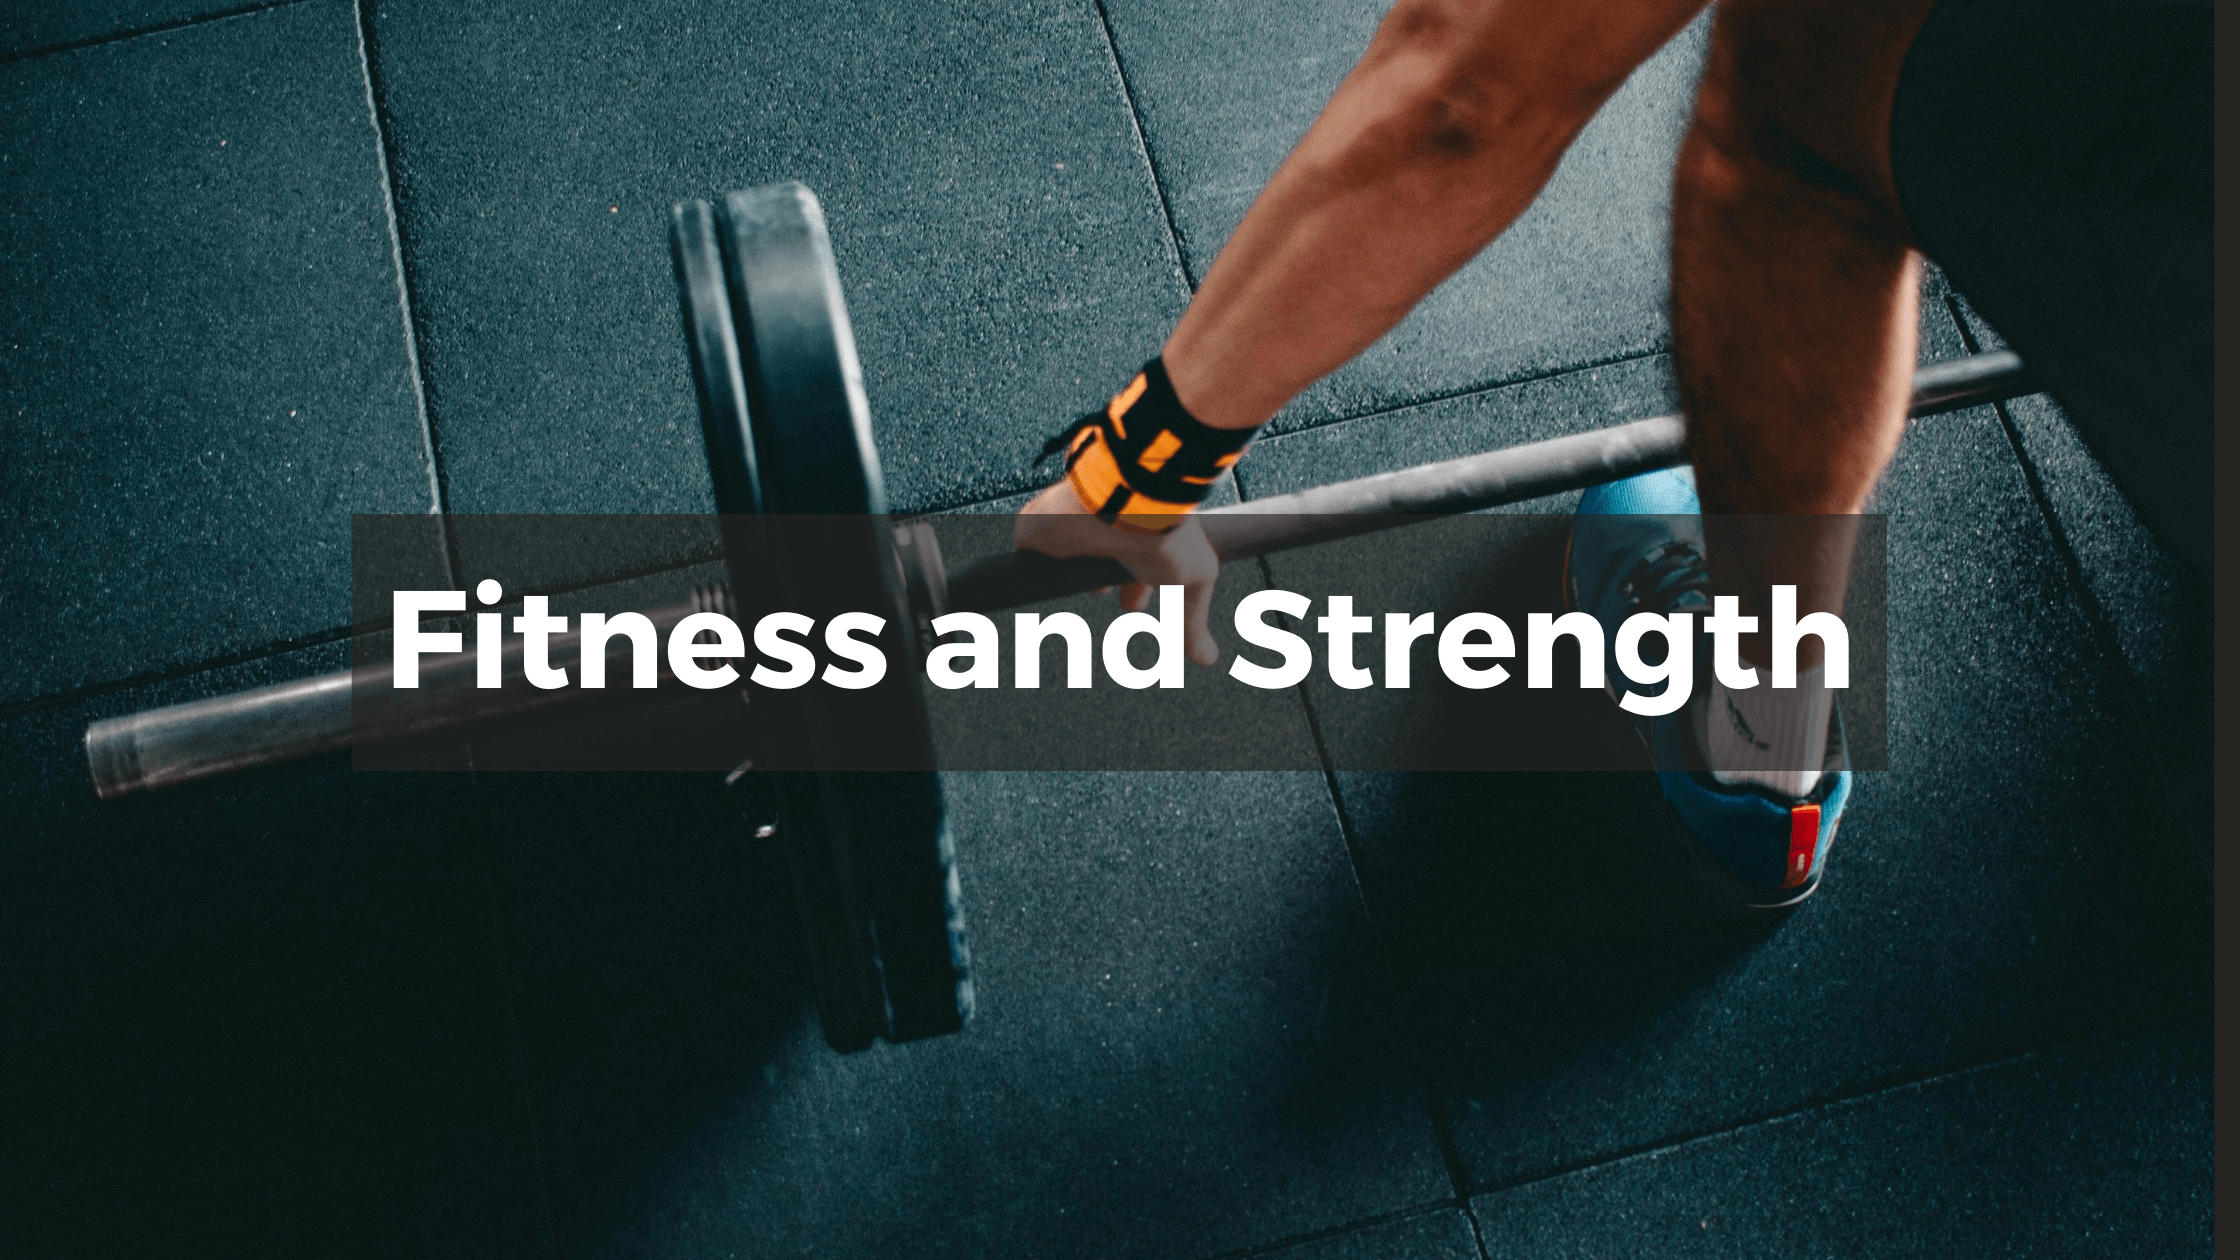 Honey for Fitness and Strength